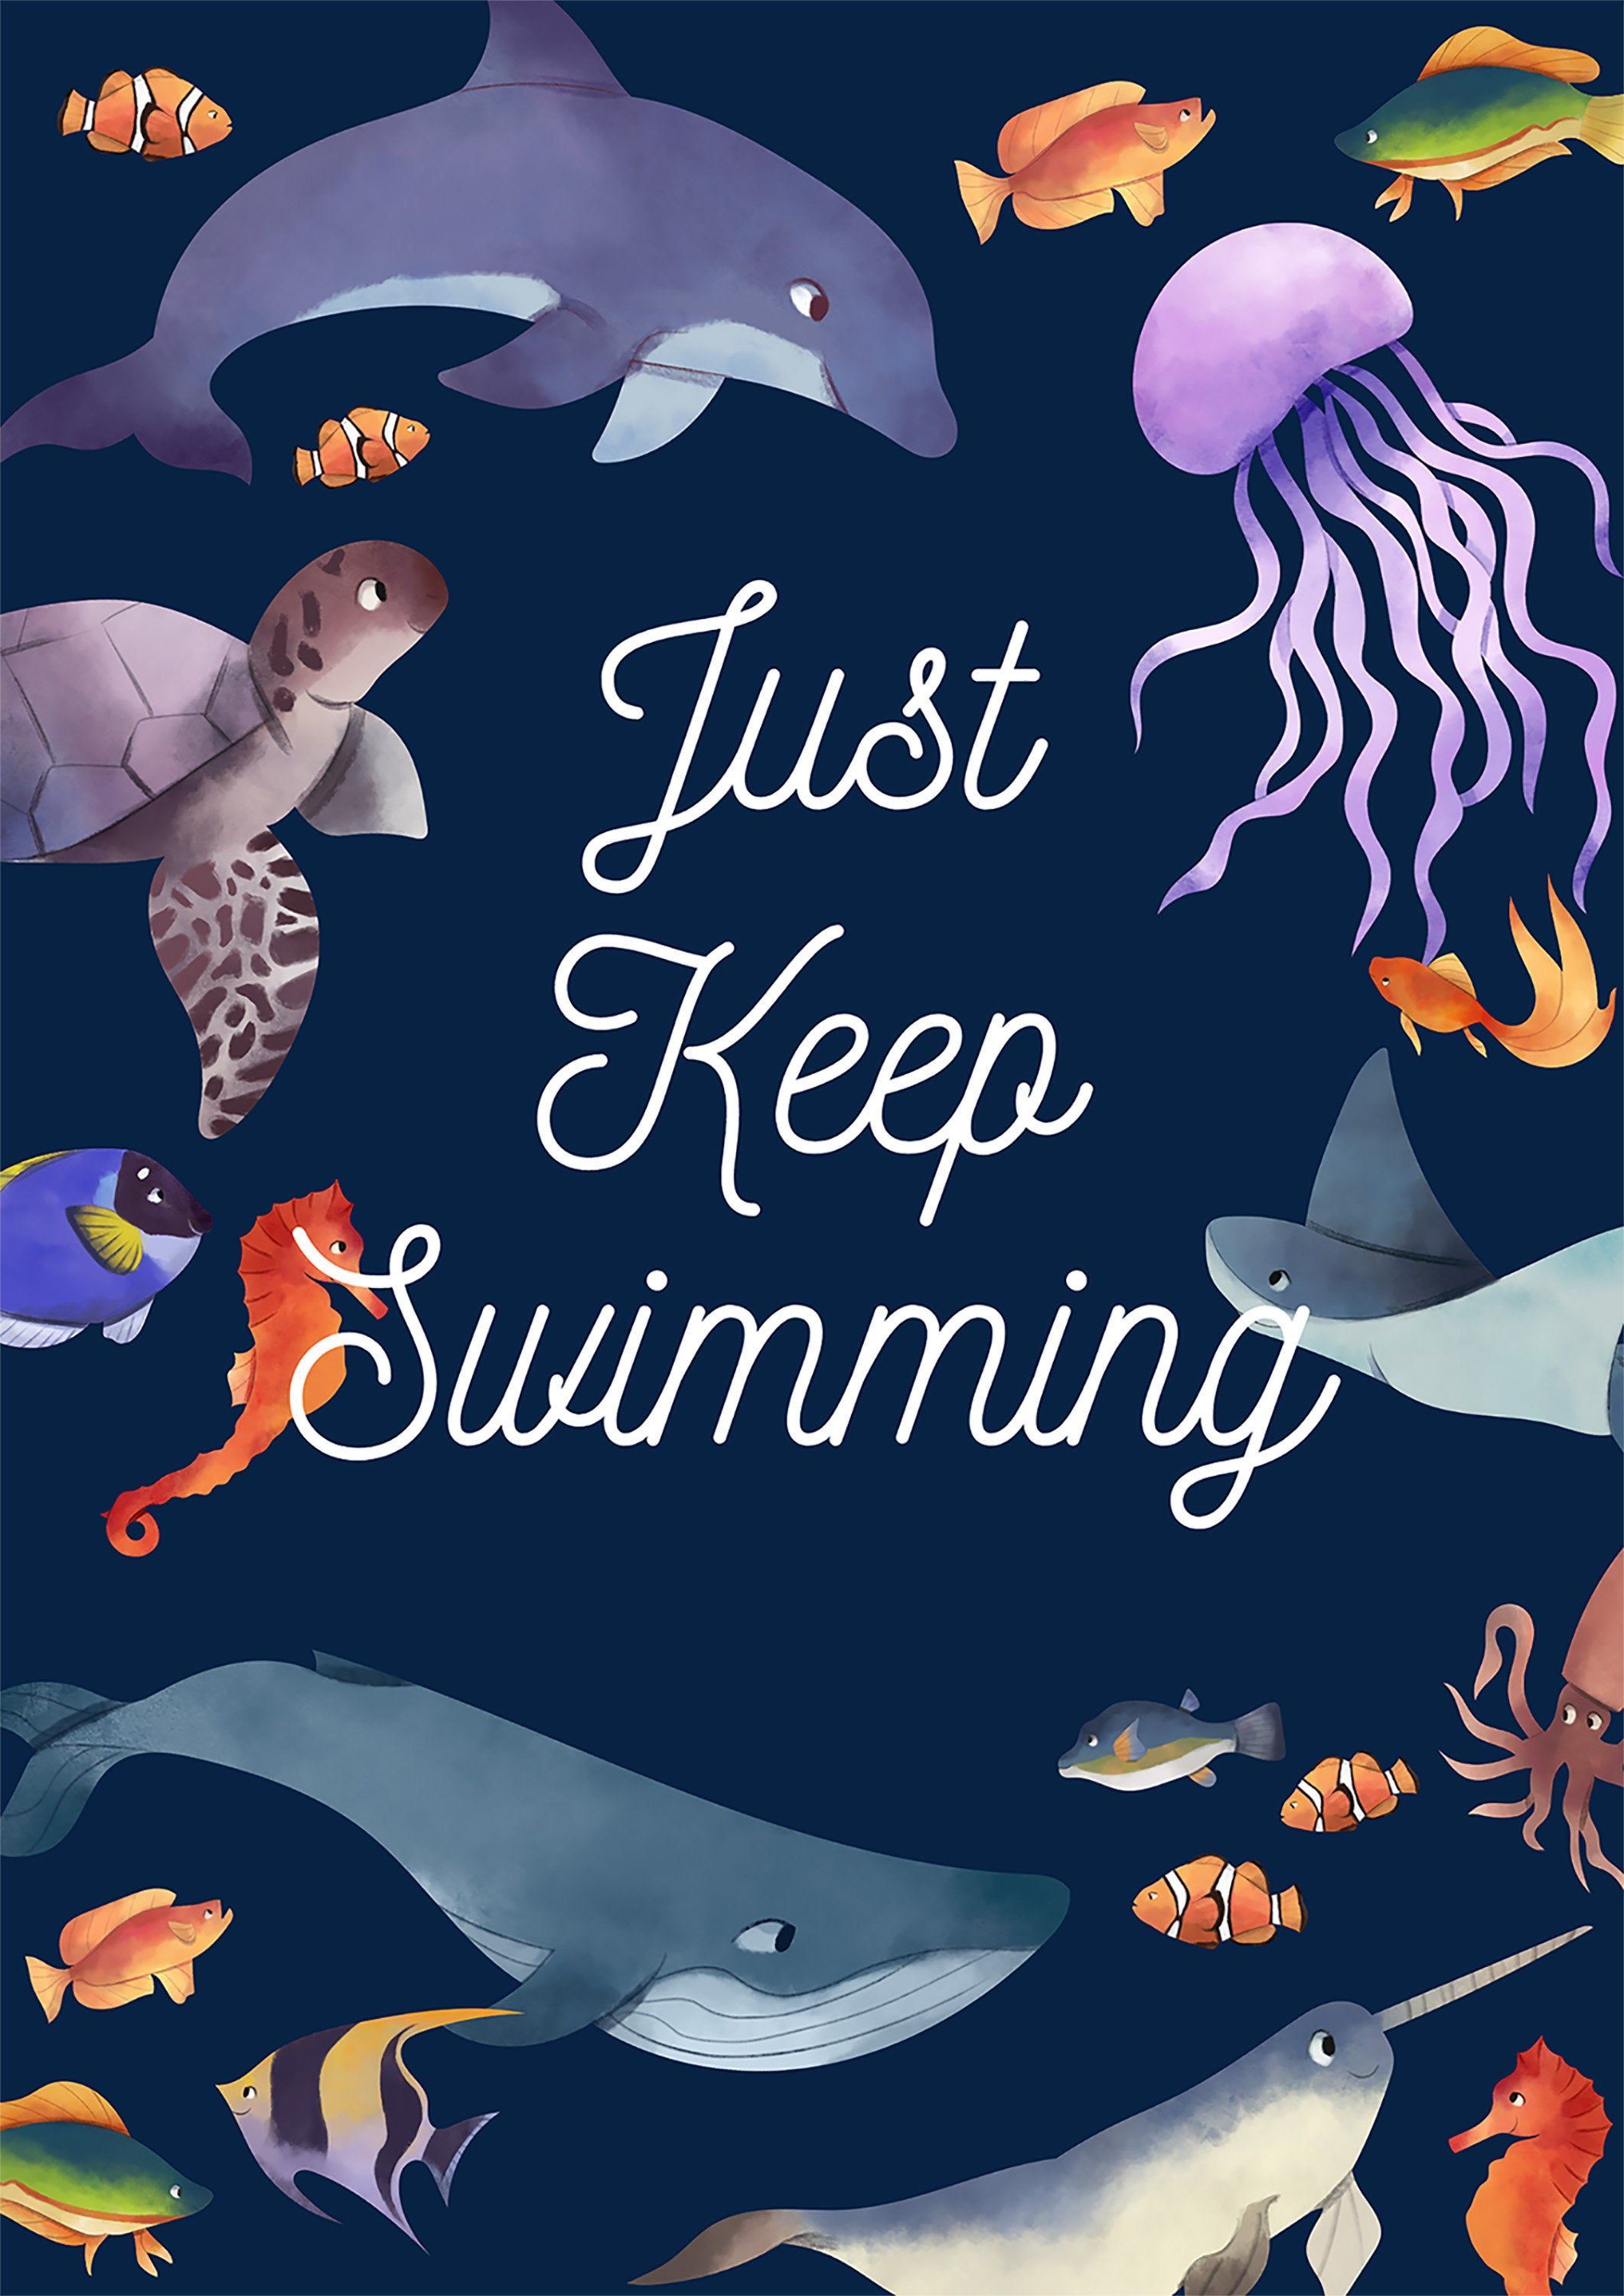 Just Keep Swimming Motivational Quote| DIGITAL DOWNLOAD Files | Downloadable Prints | Printable Wall Art | Digital Prints Download